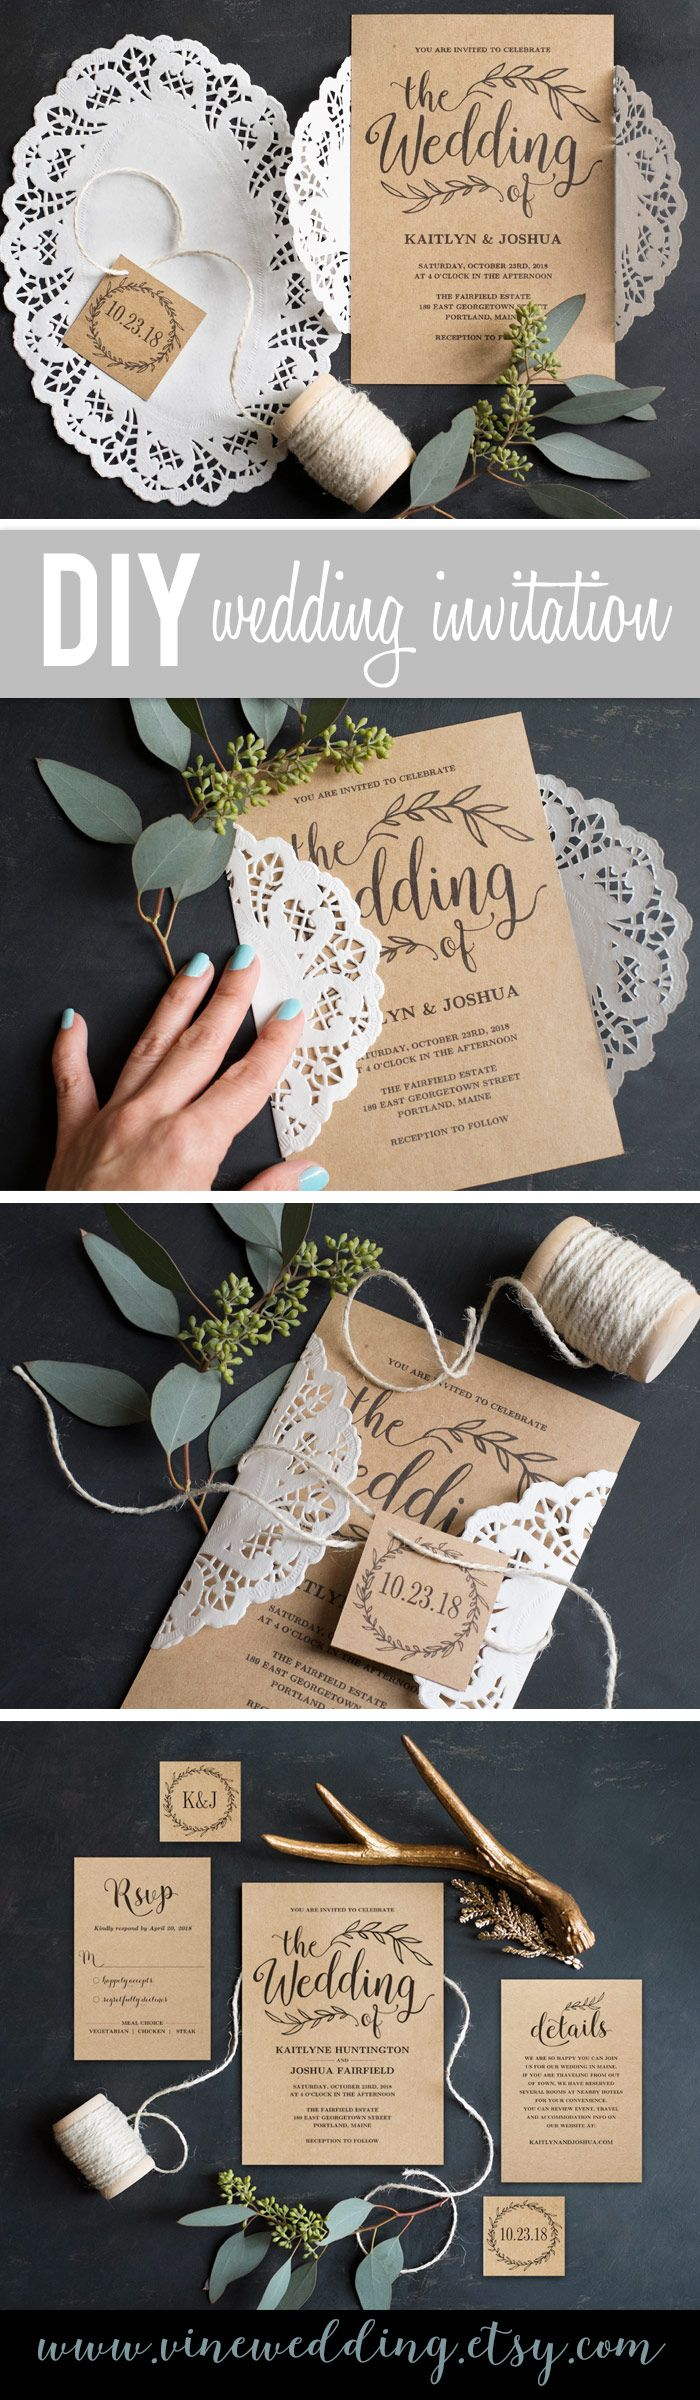 64 best wedding stationery images on pinterest wedding stationery wedding invitations junglespirit